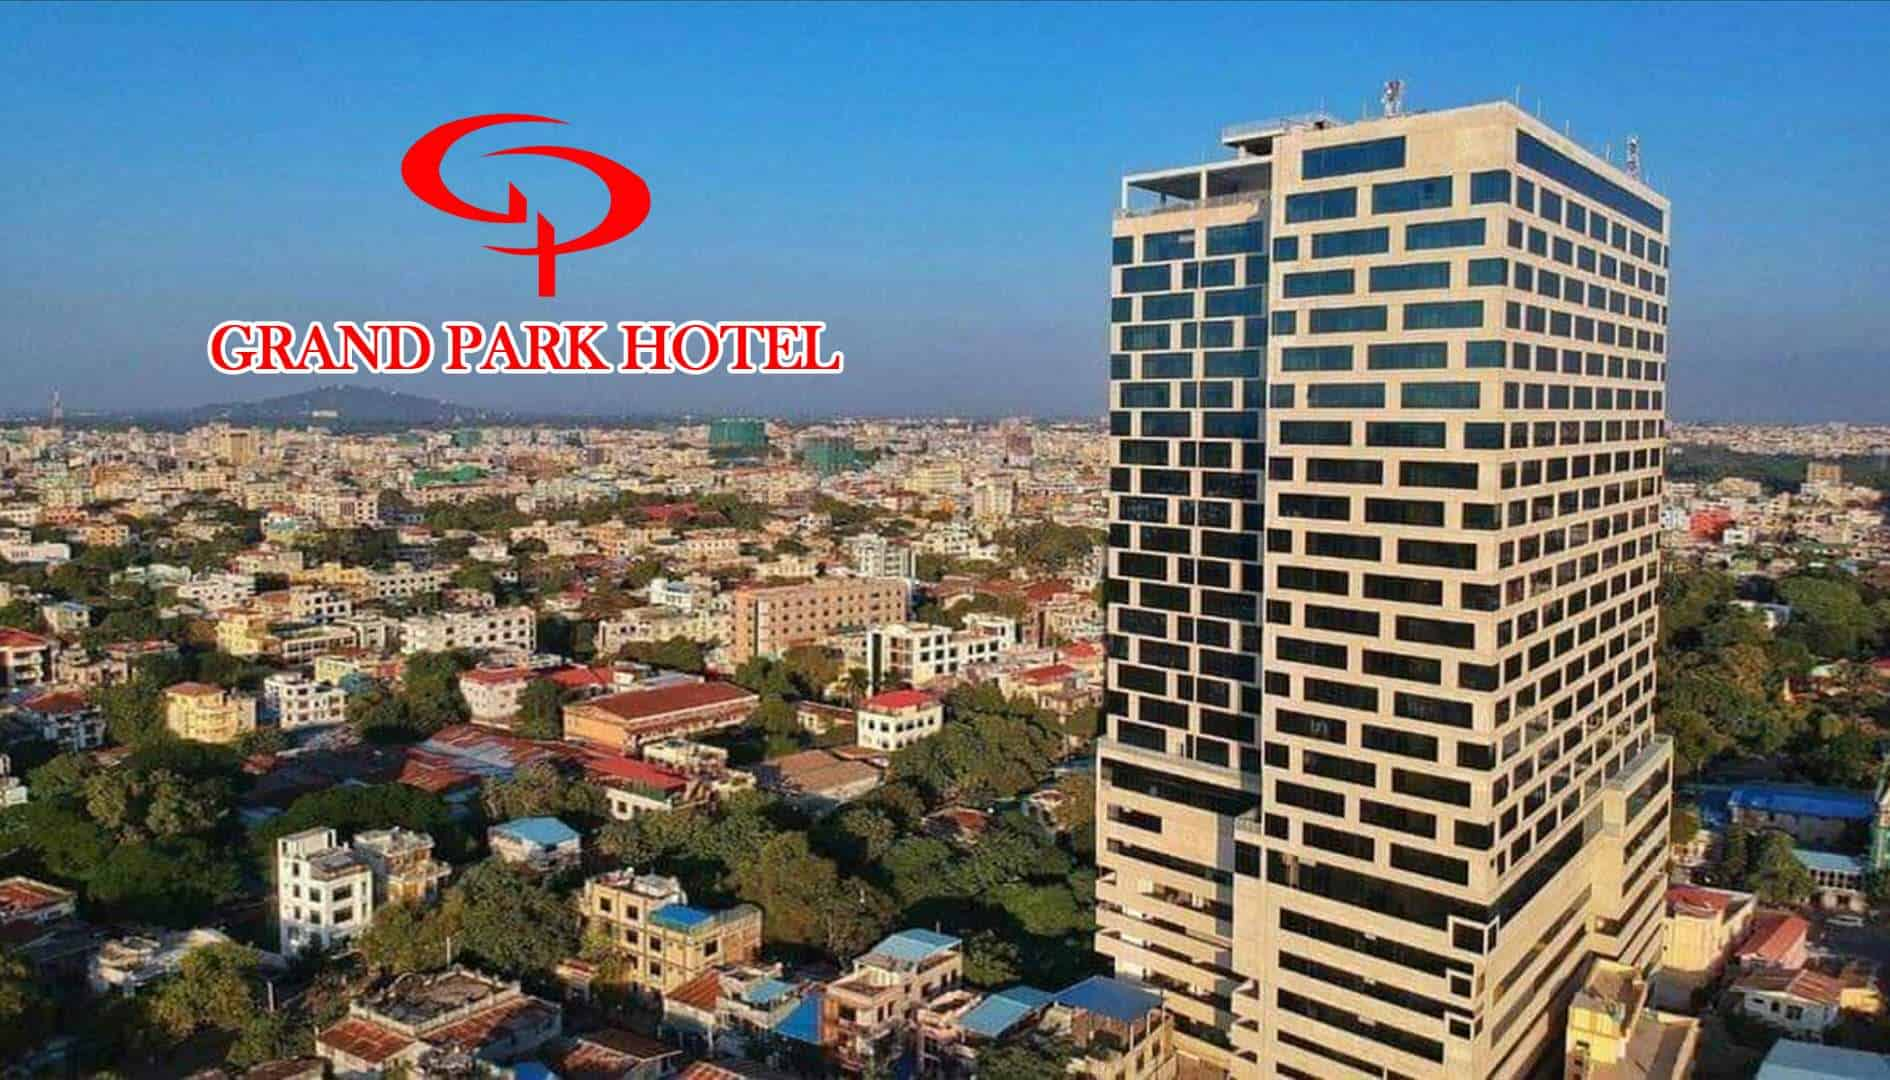 Grand Park Hotel, Mandalay selects UbiQ as its solution partner 1